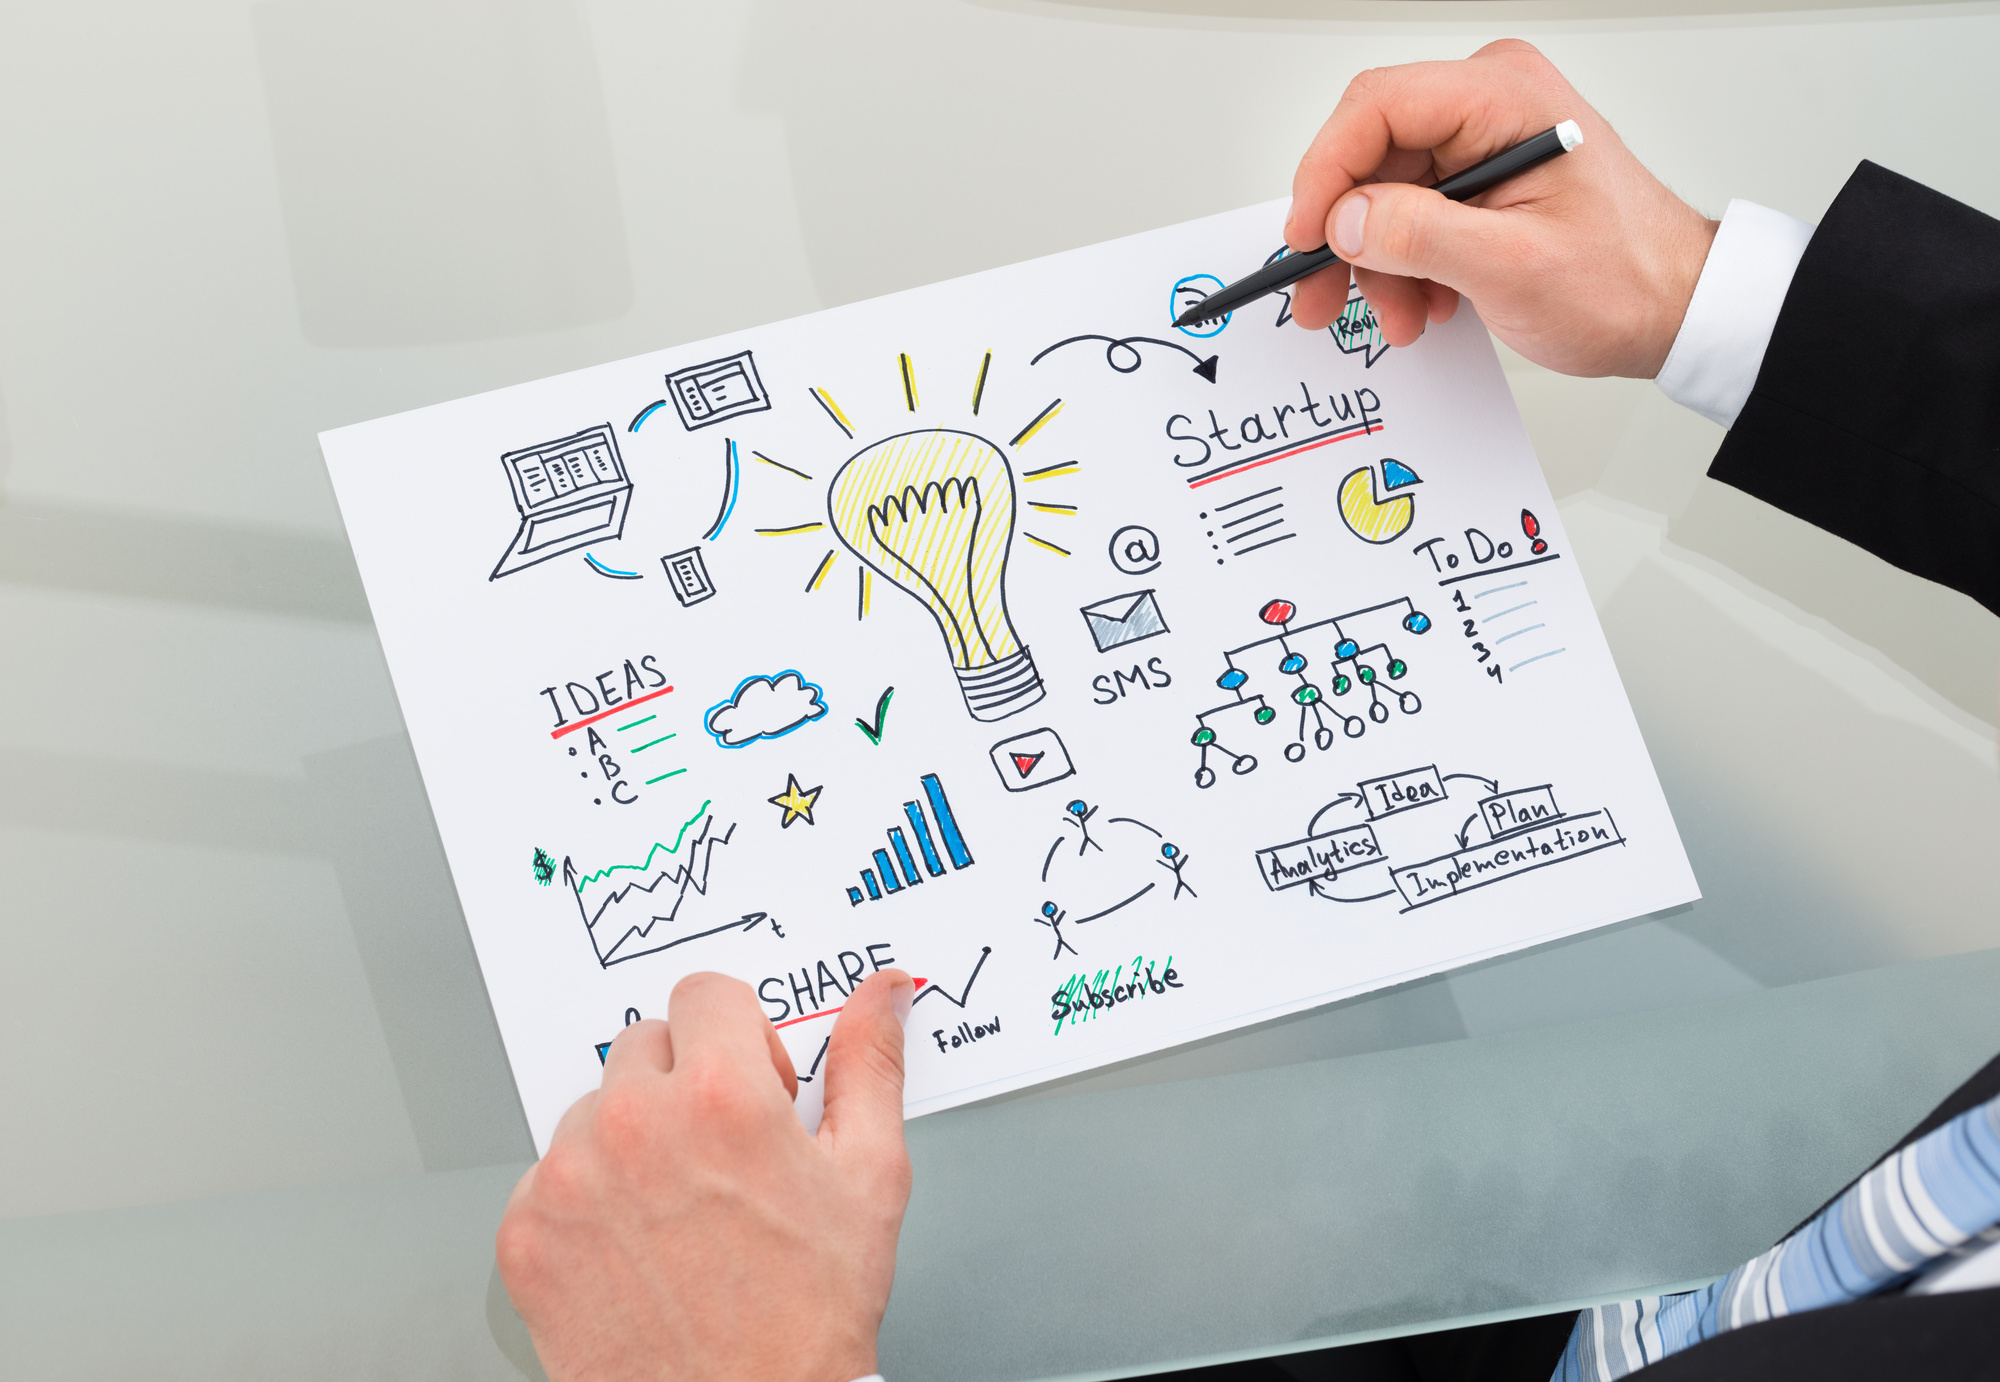 5 Things to Add to Your Startup Checklist in 2020